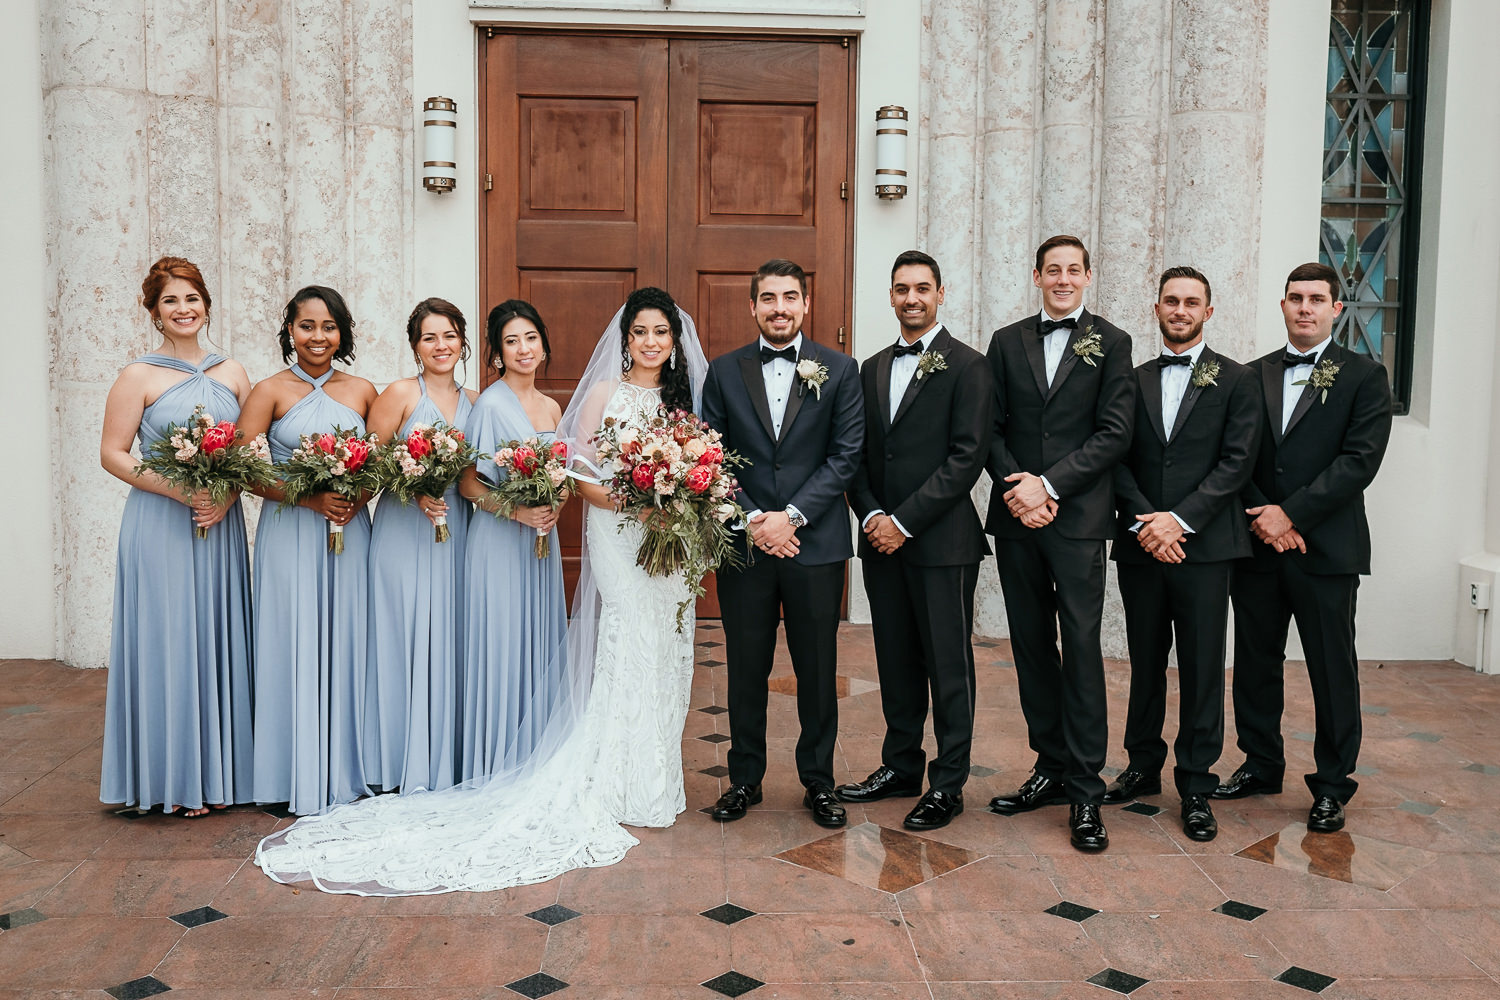 bridal party posing in front of wooden church doors